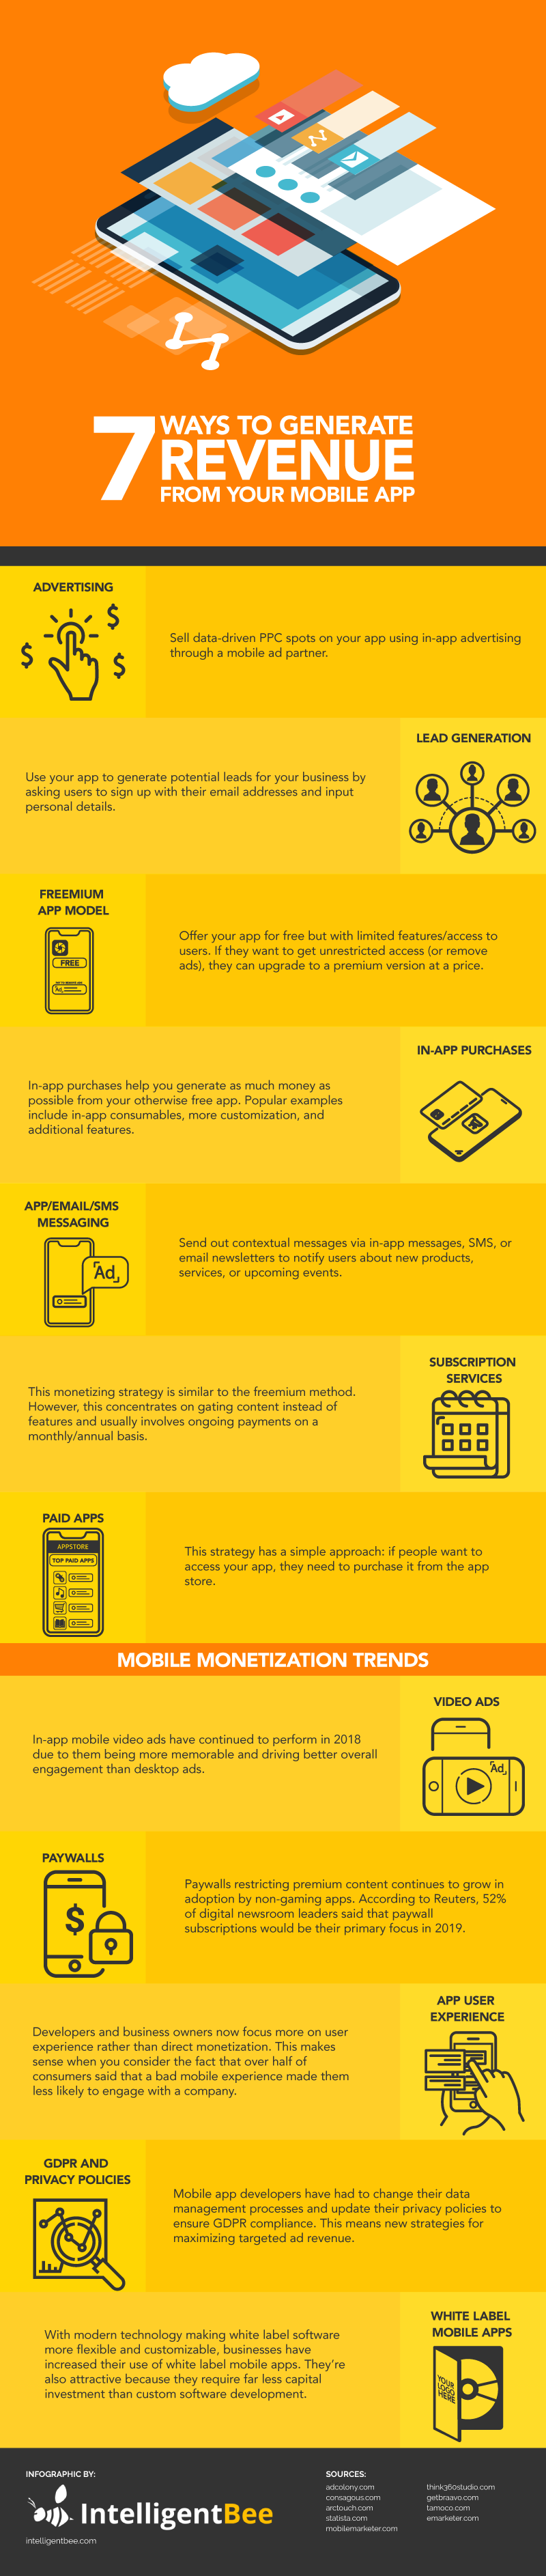 Generate-Revenue-from-Mobile-App-Infographic